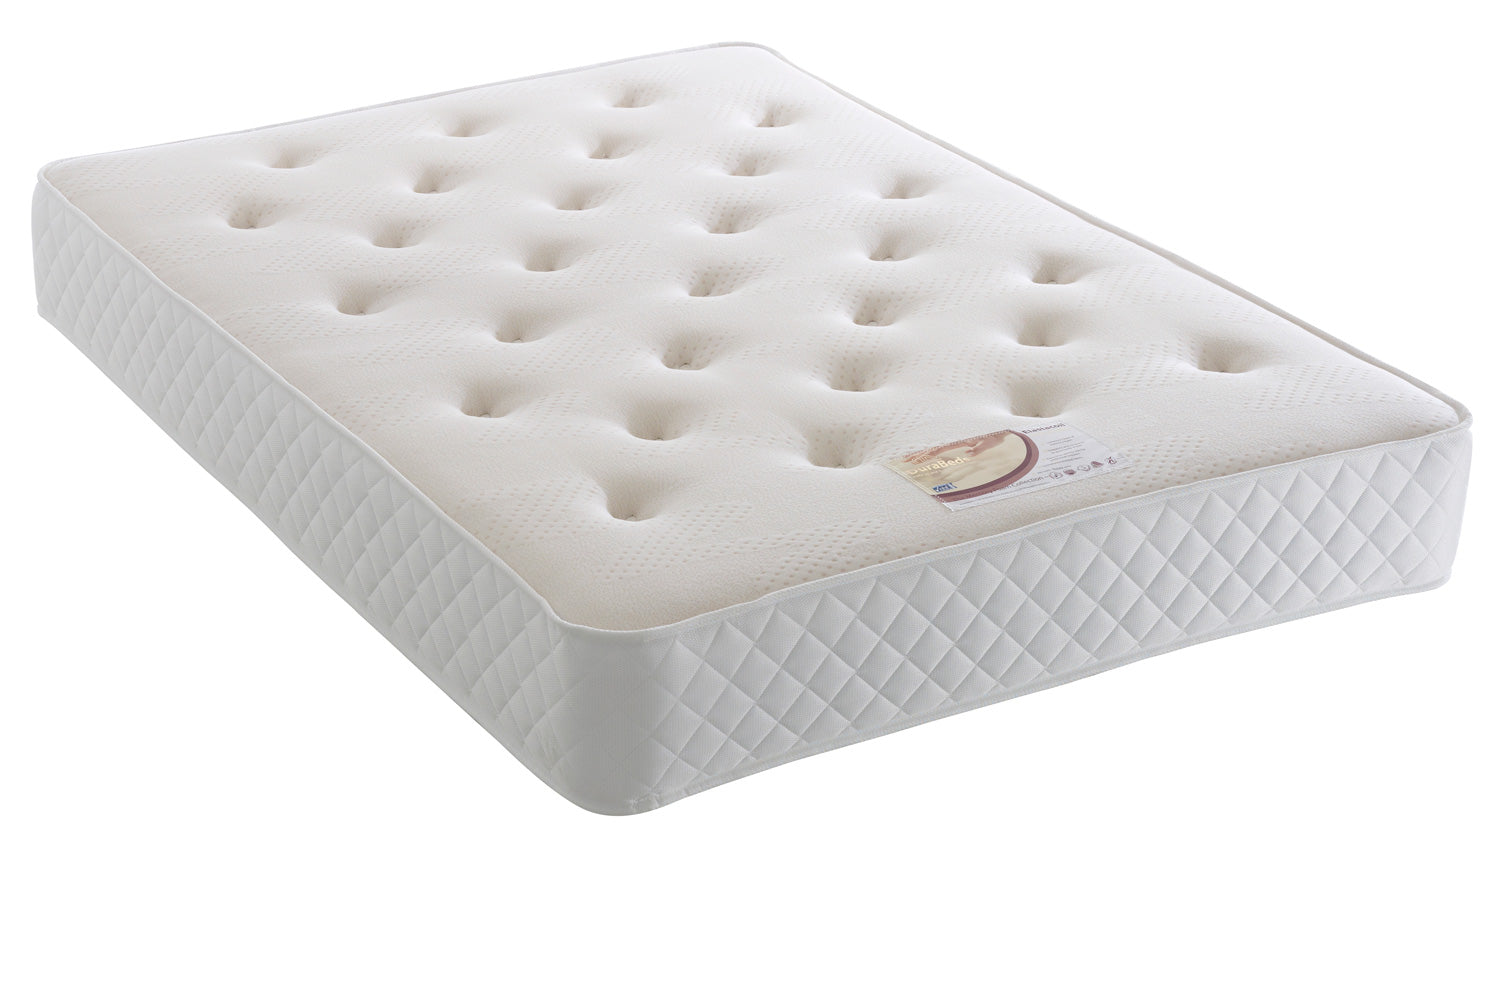 Elastacoil Divan Set (Mattress = Medium firmness, Depth 27 cm)